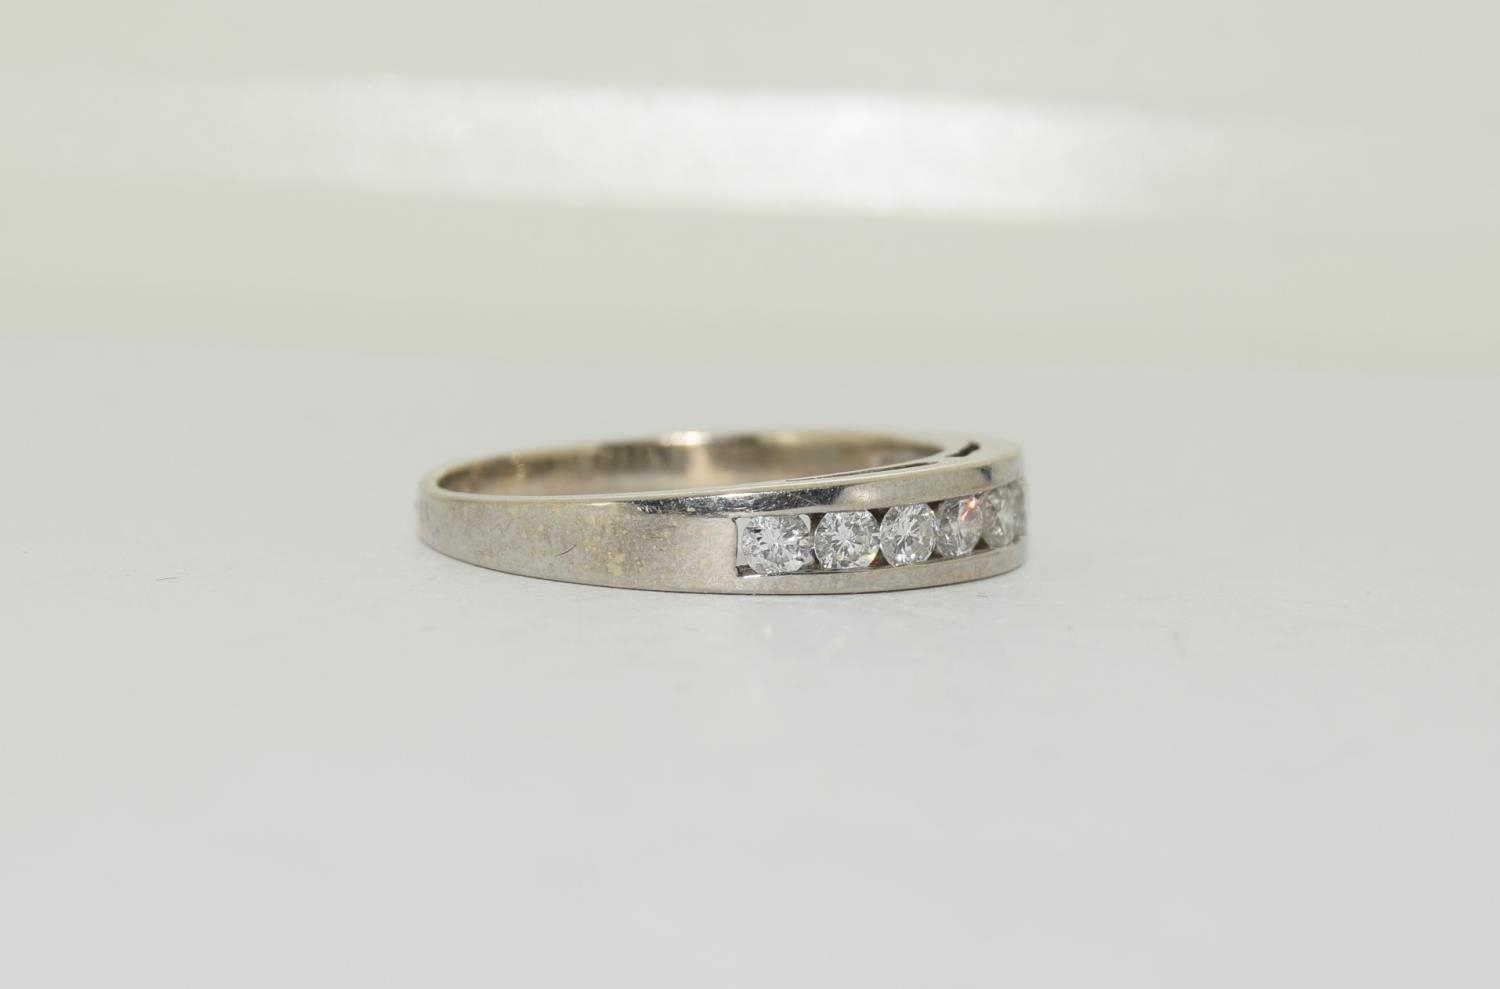 18ct white gold diamond half eternity ring approx 80 pionts size T - Image 5 of 6